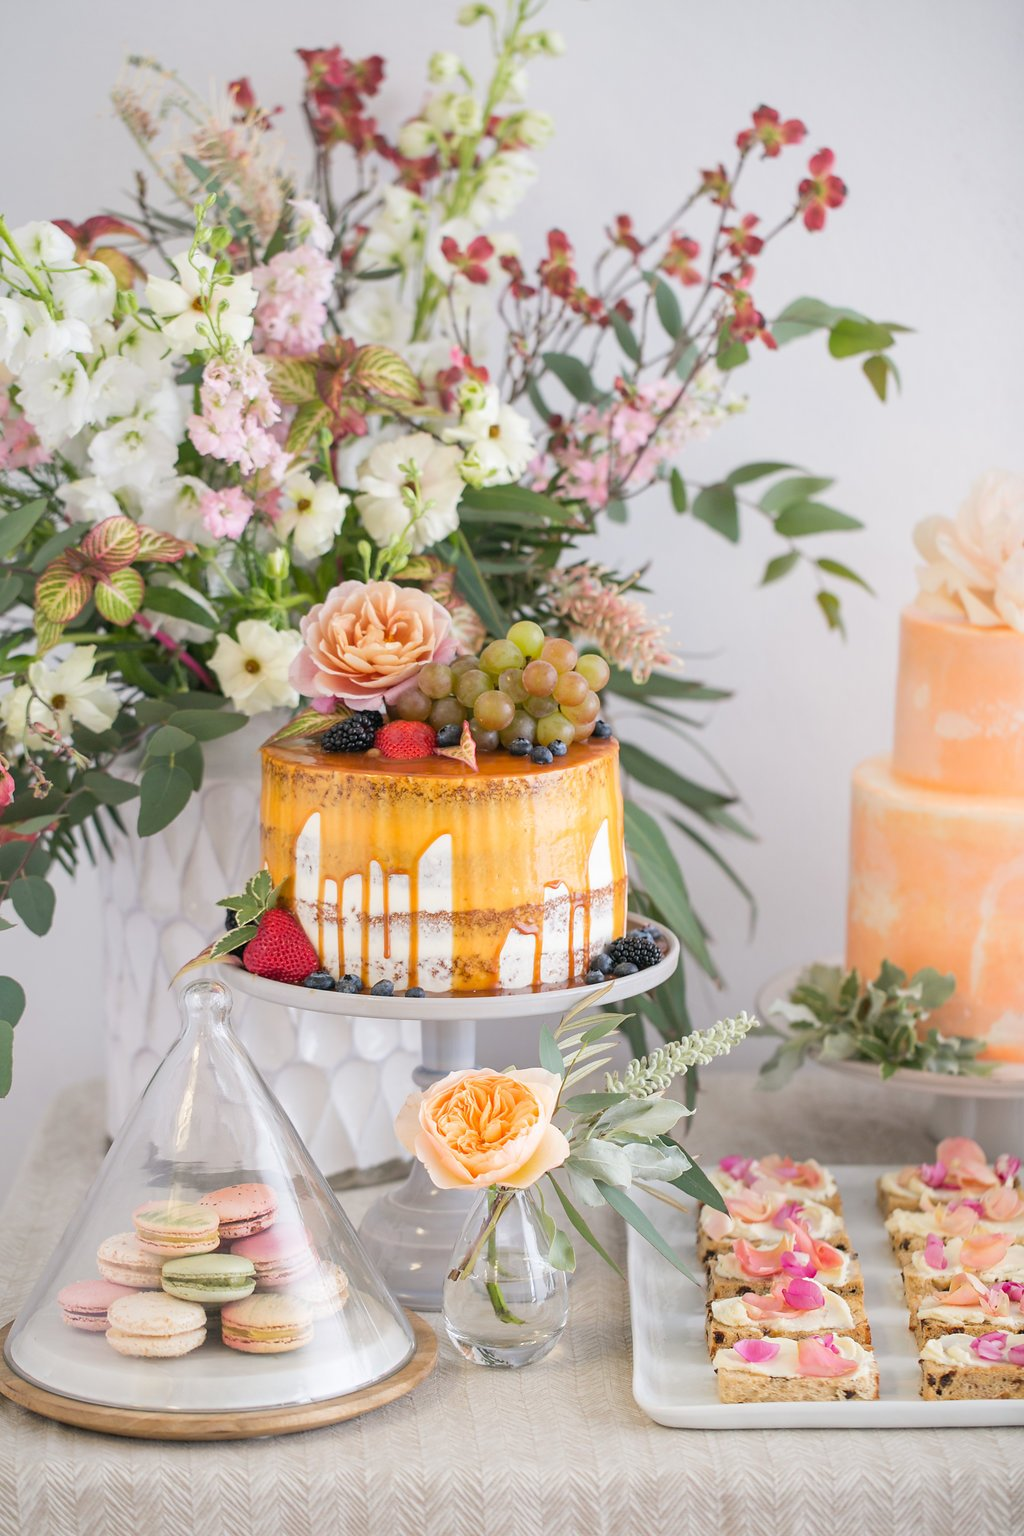 bridal shower dessert table with caramel glaze cake and macaroons